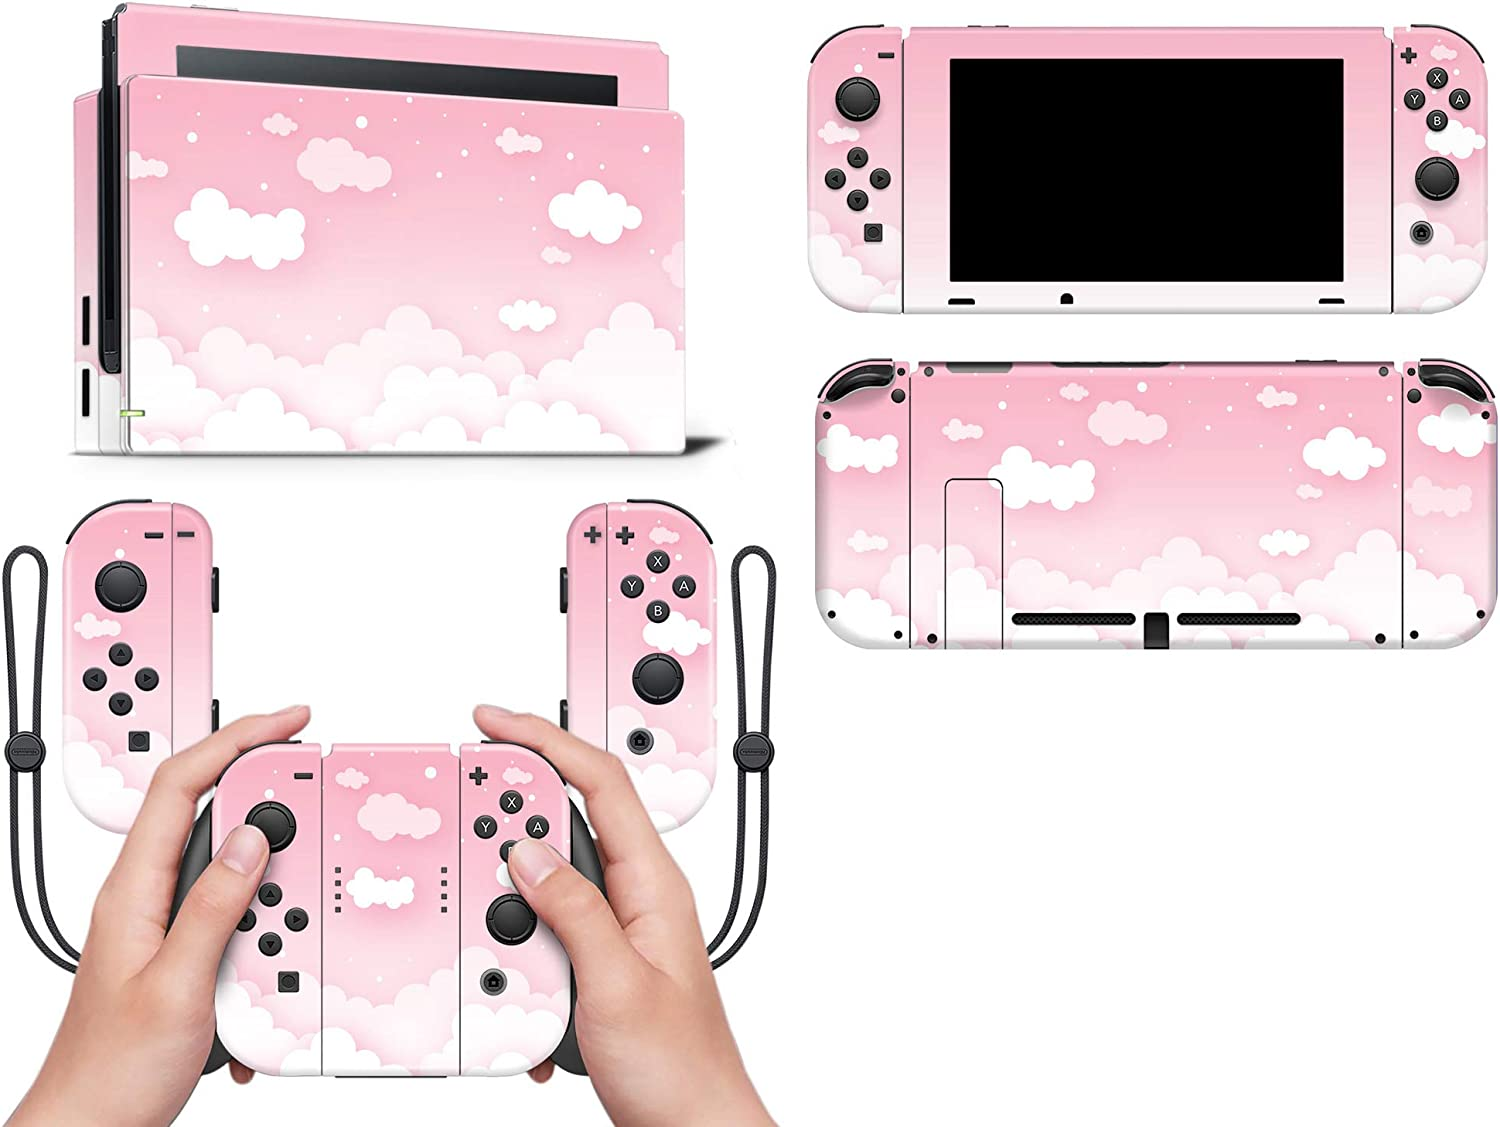 Pastel Pink Sky Clouds Full wrap Vinyl Skin Made with Premium Vinyl with overlaminate